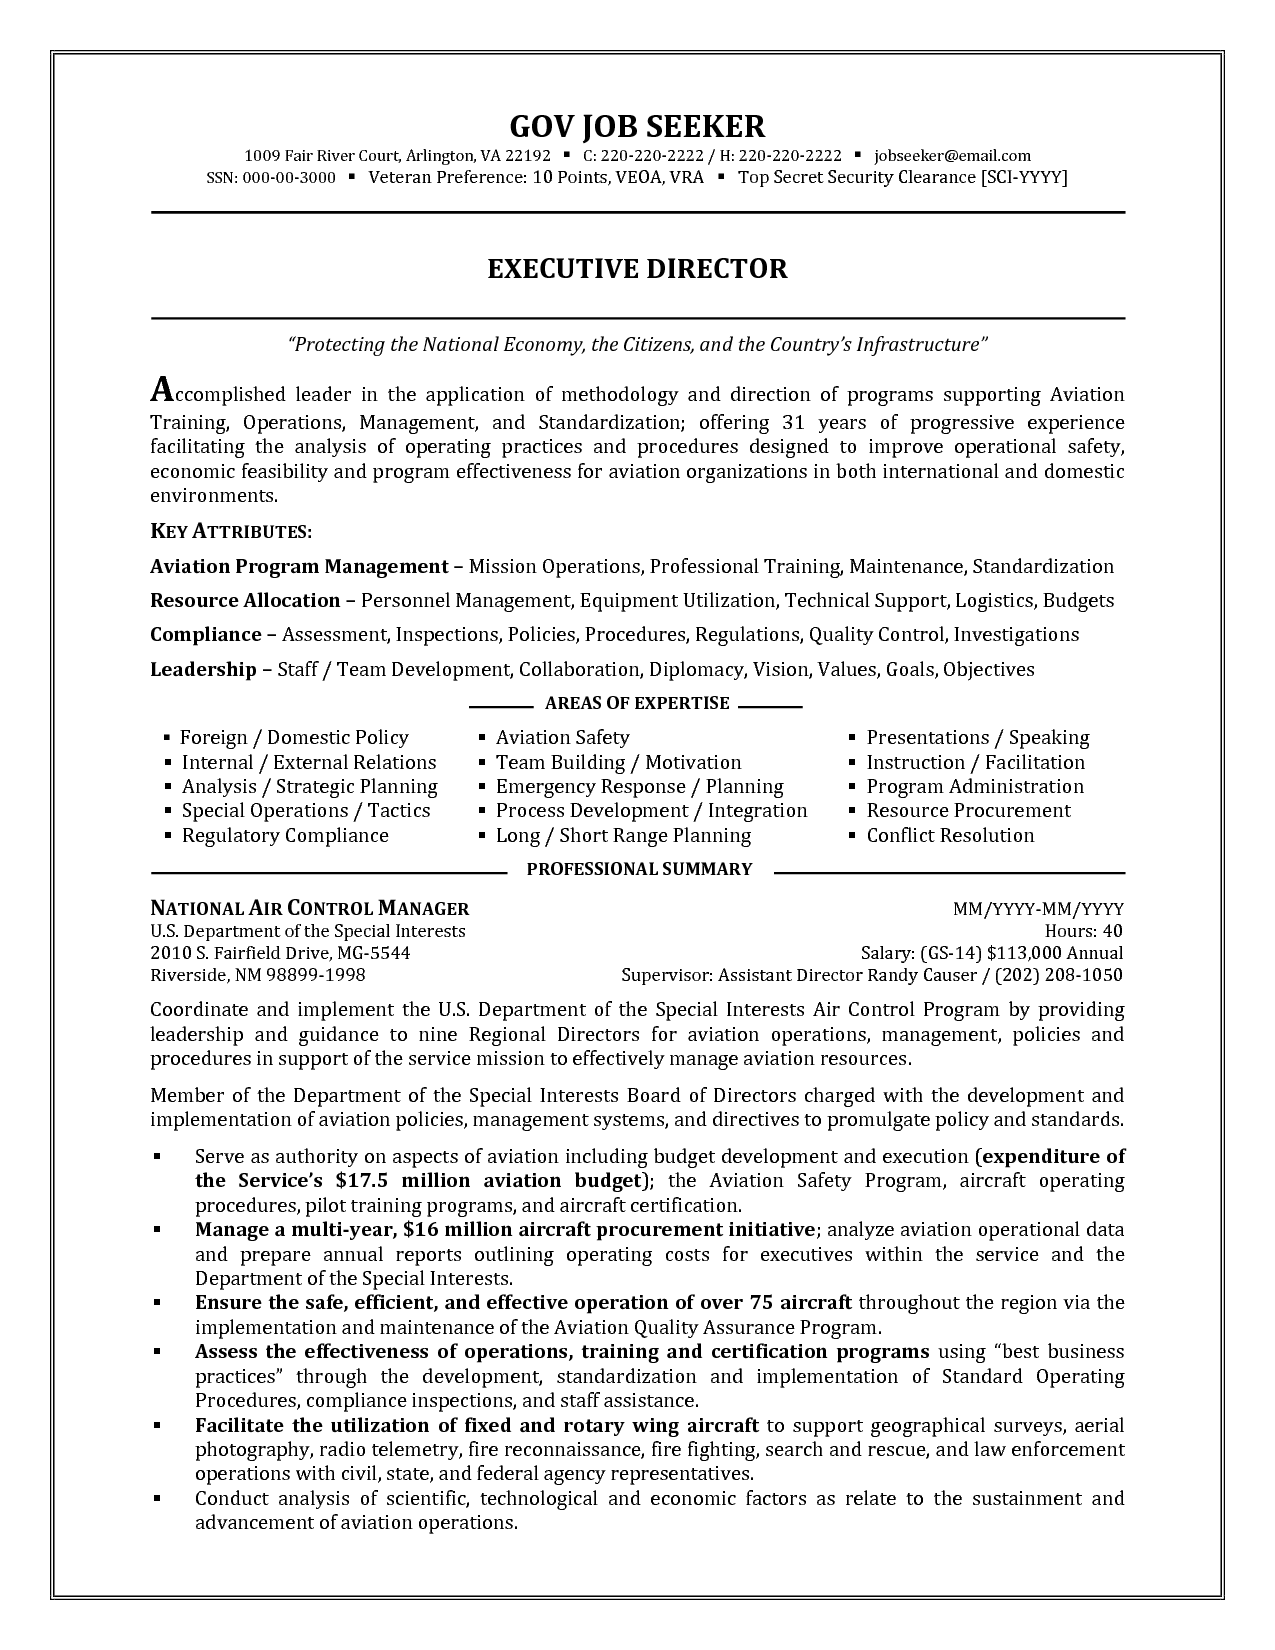 Management Resume Templates to Impress Any Employer   LiveCareer break up us